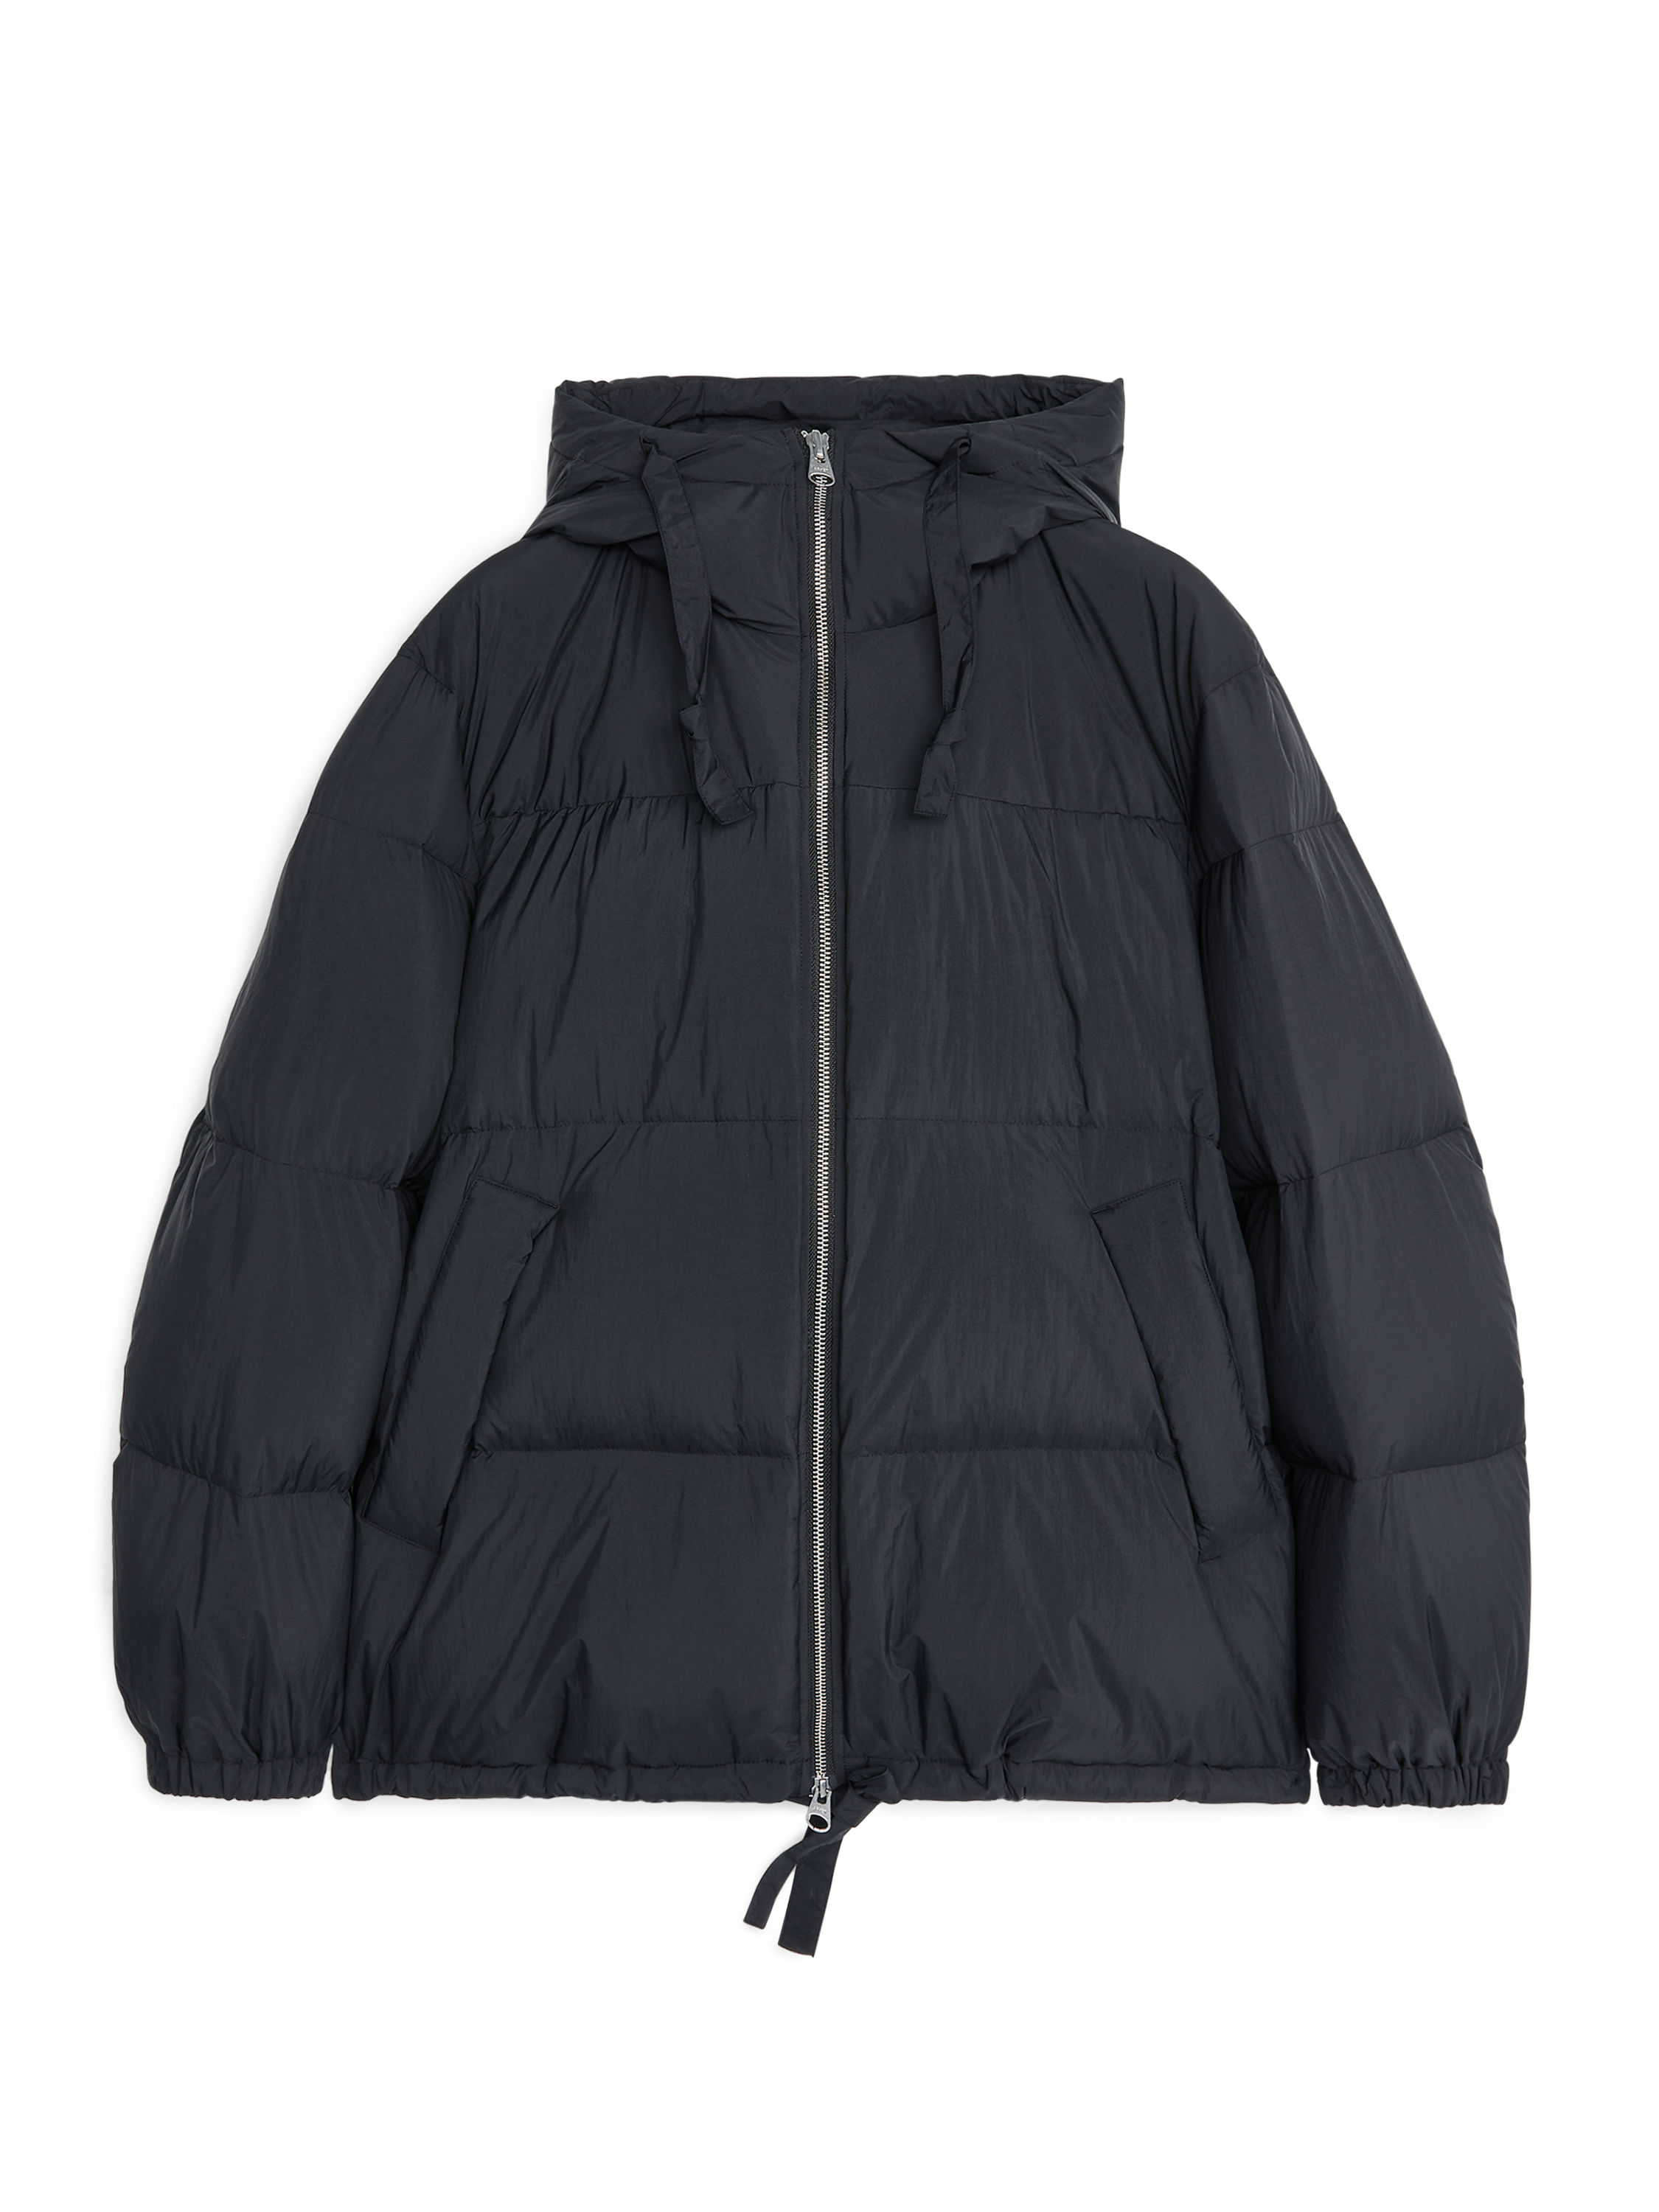 Fabric Swatch image of Arket redown puffer jacket in black